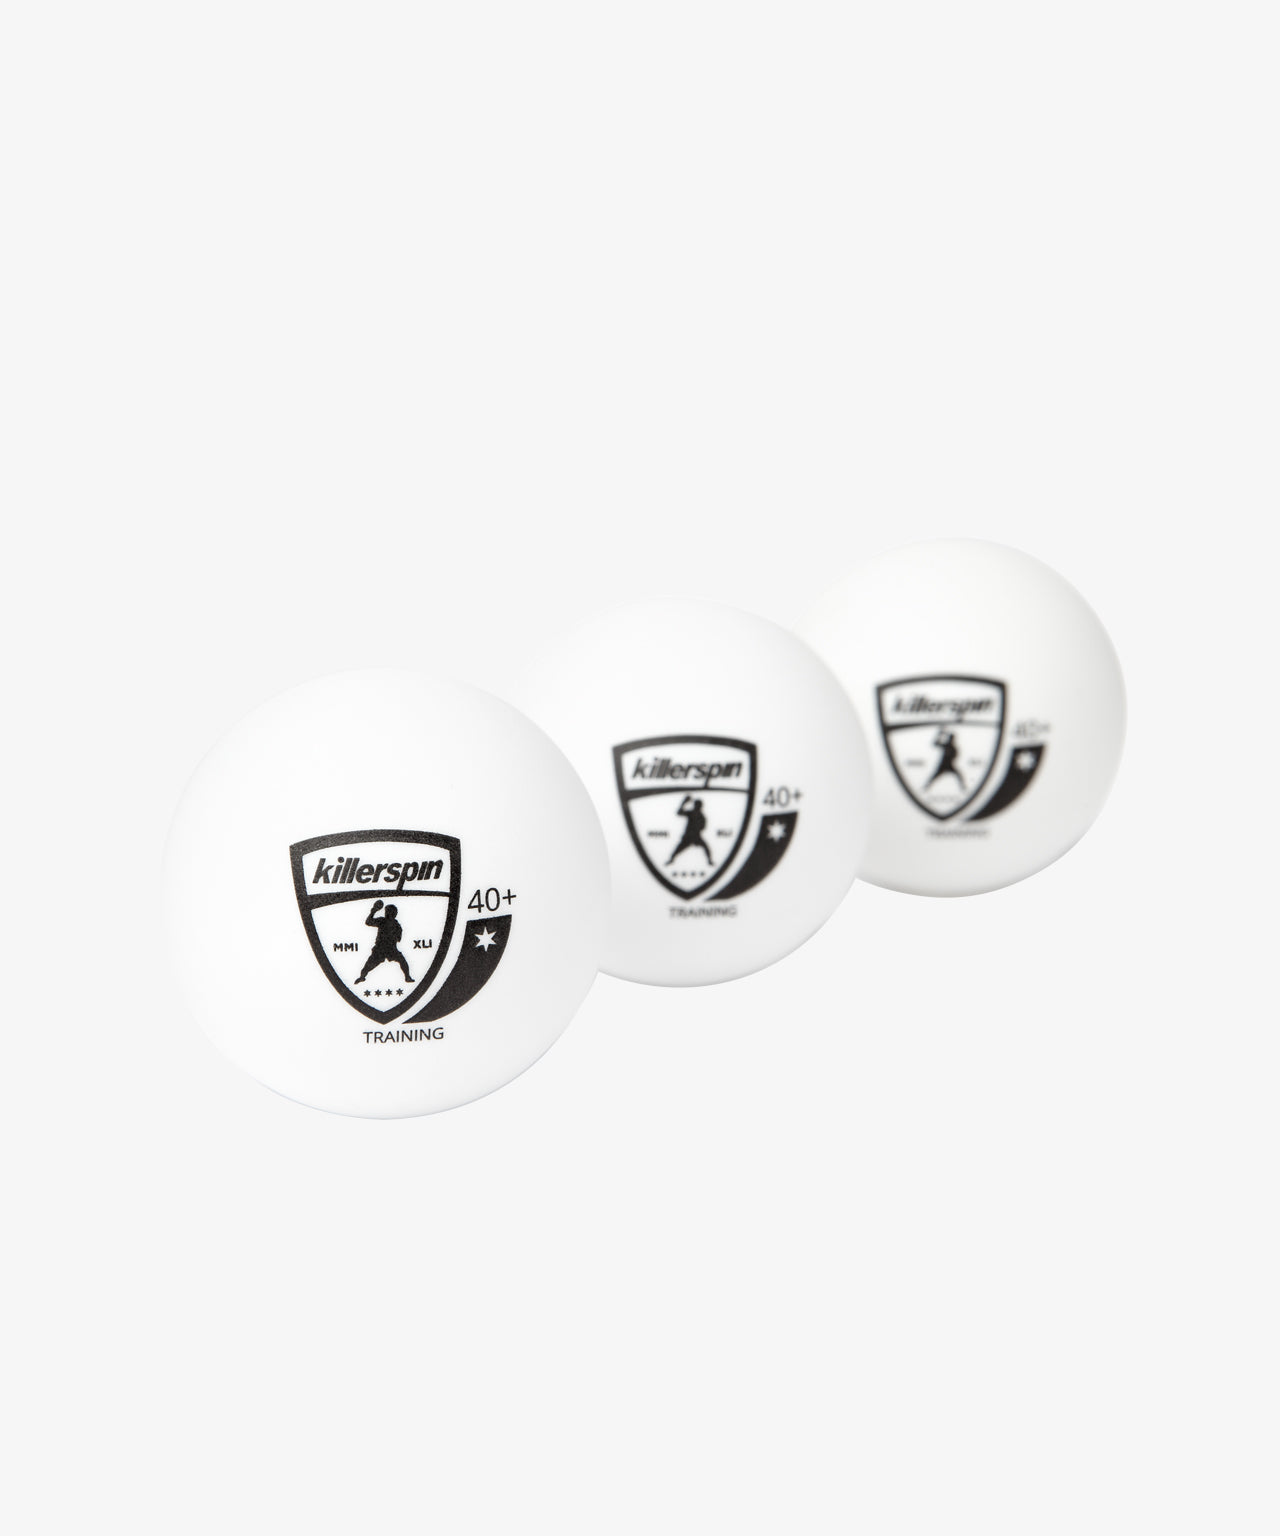 Training 1 Star Balls 40+ (White) 100 pack